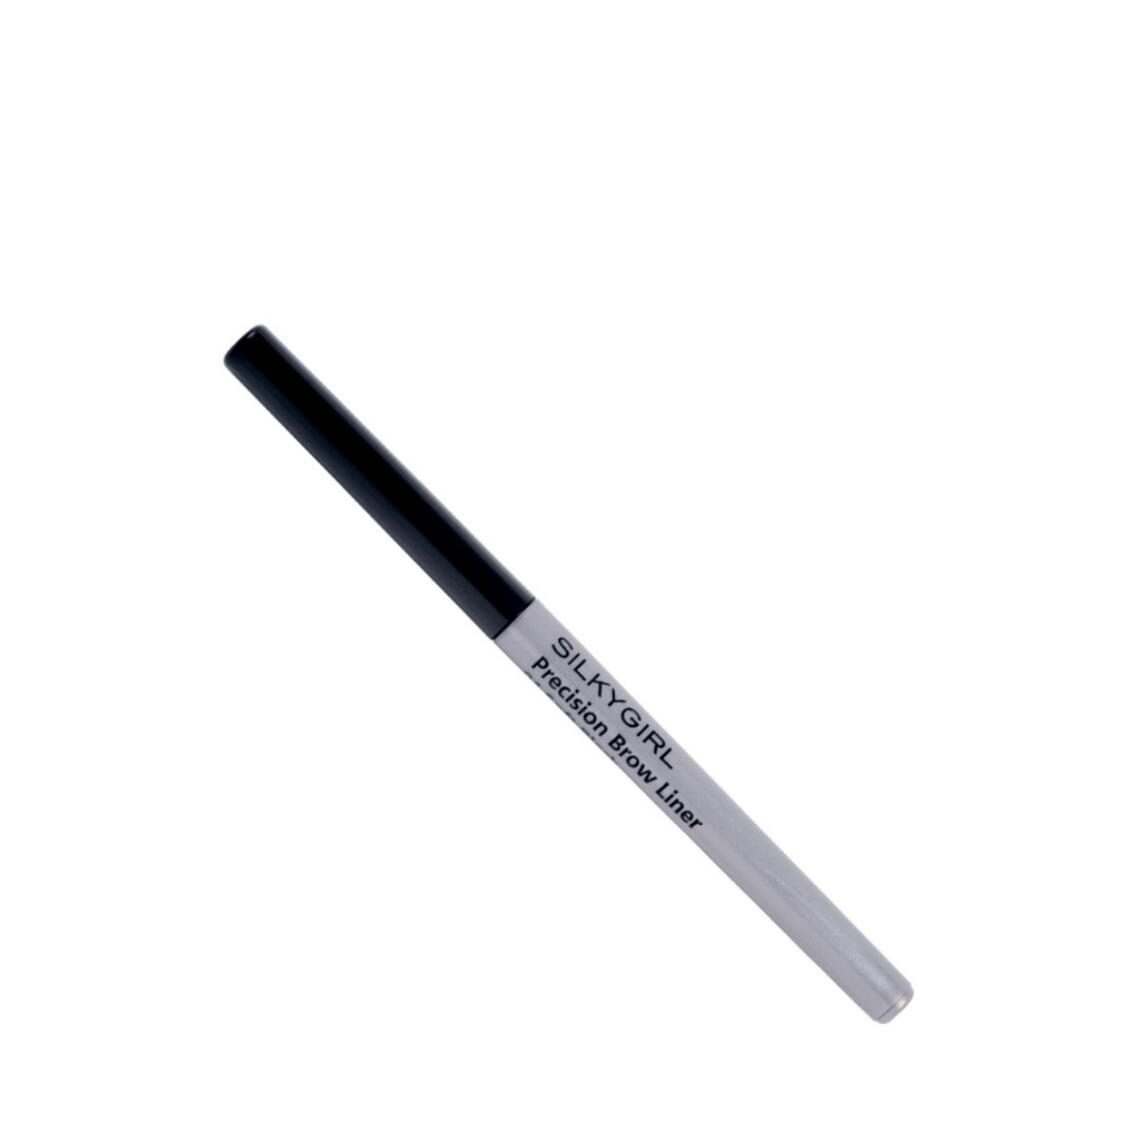 Precision Brow Liner Pen 01 Soft Black